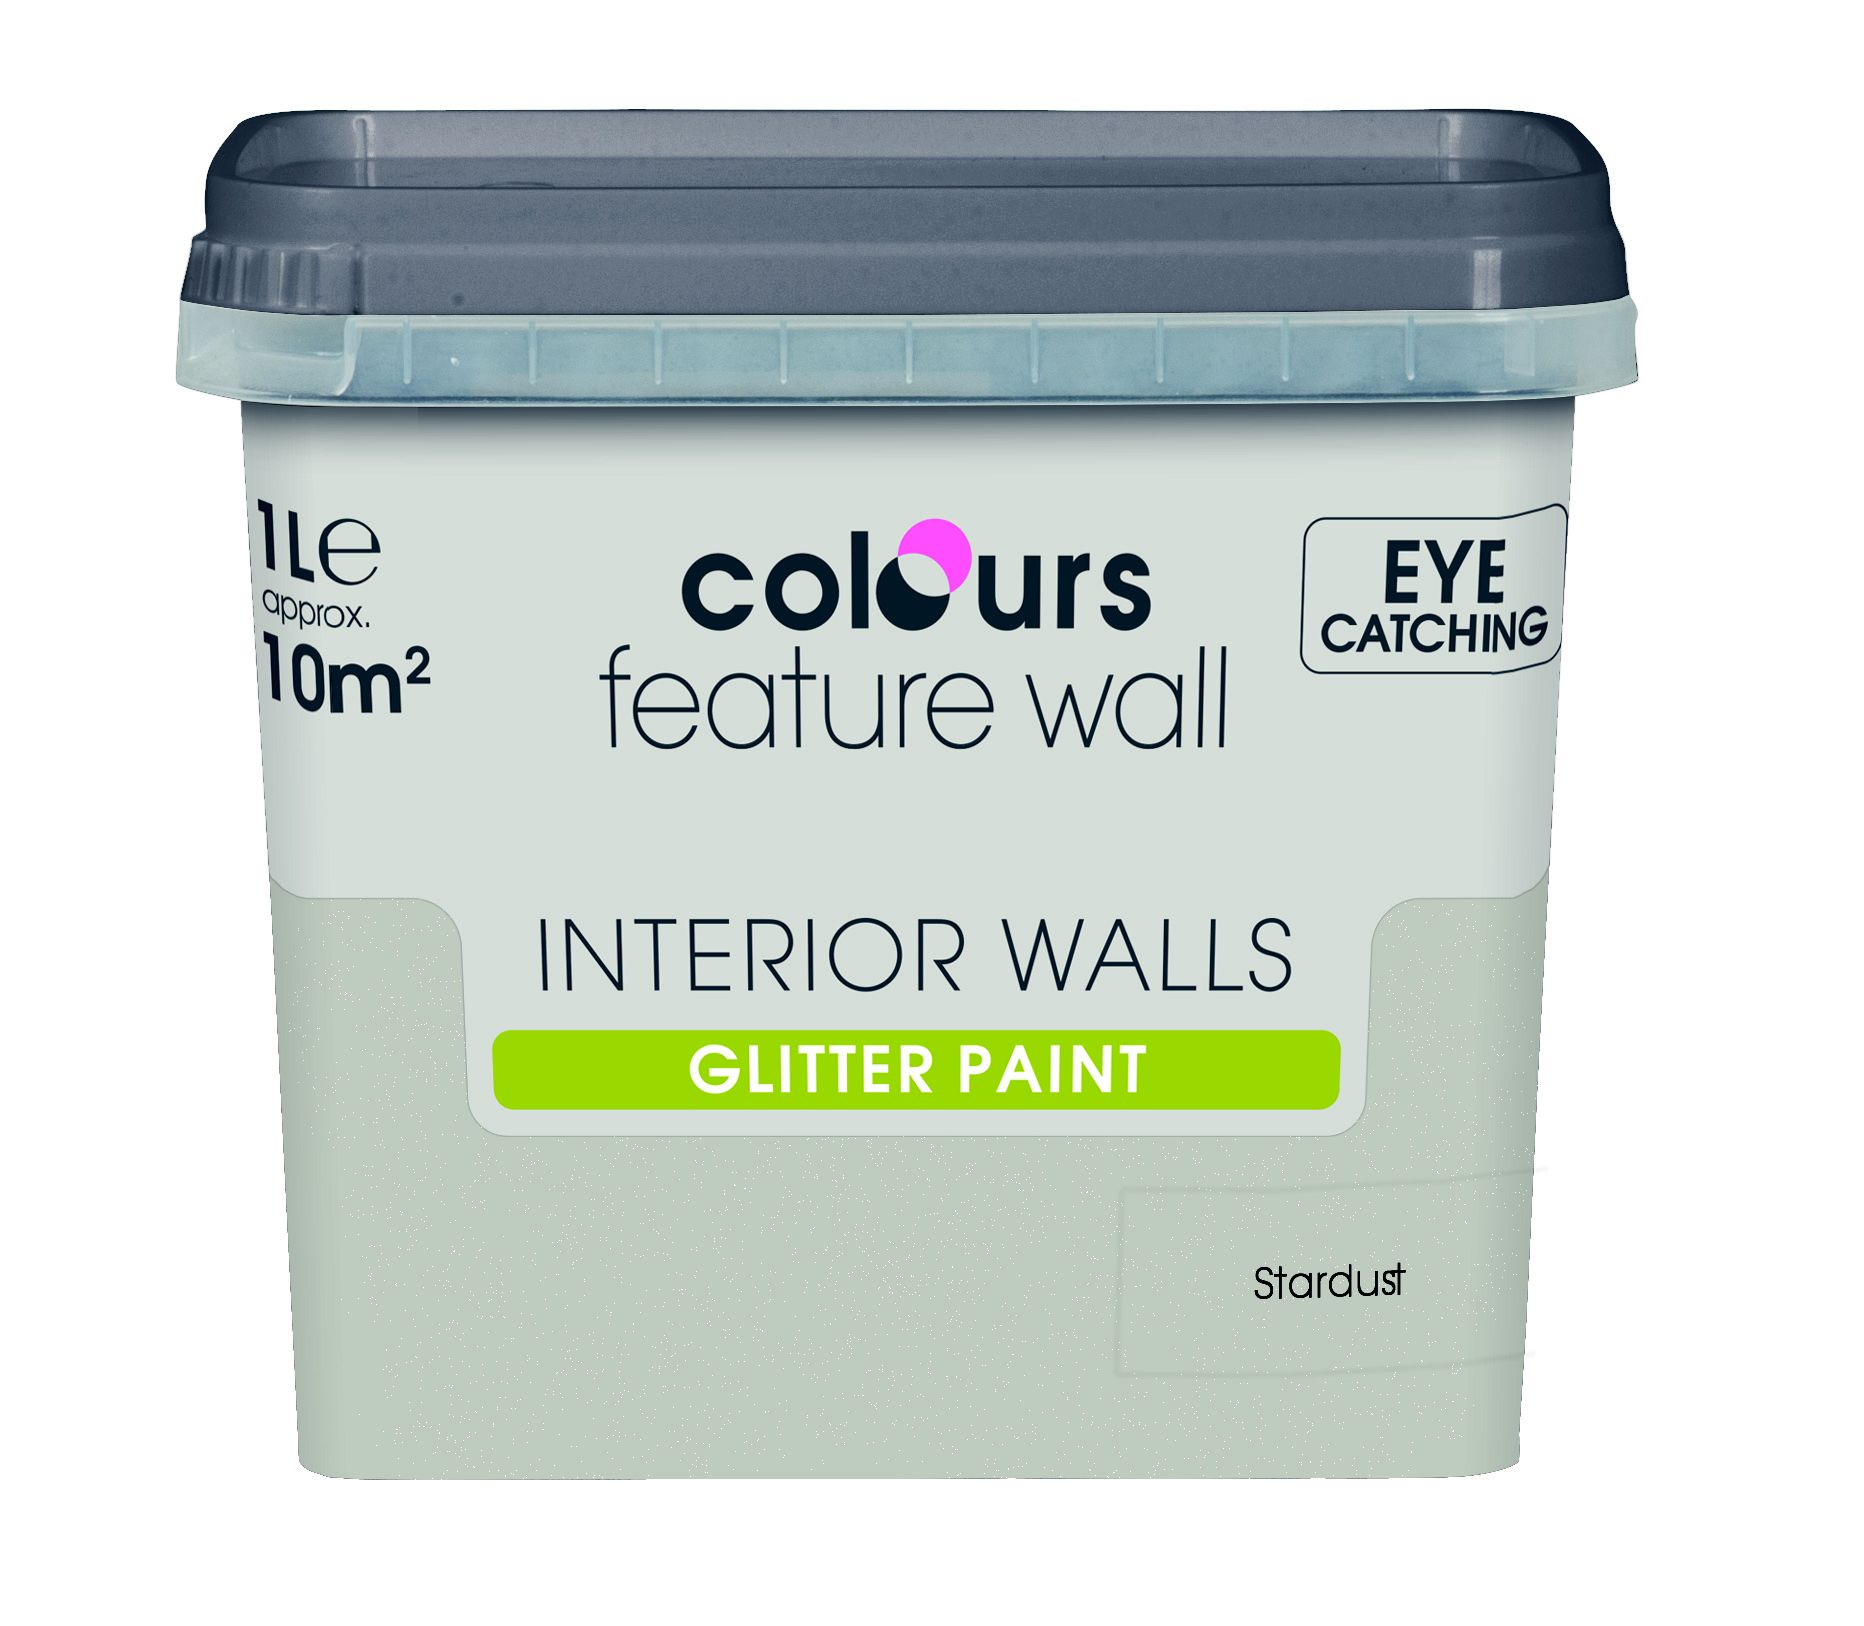 colours feature wall stardust glitter emulsion paint 1l. Black Bedroom Furniture Sets. Home Design Ideas